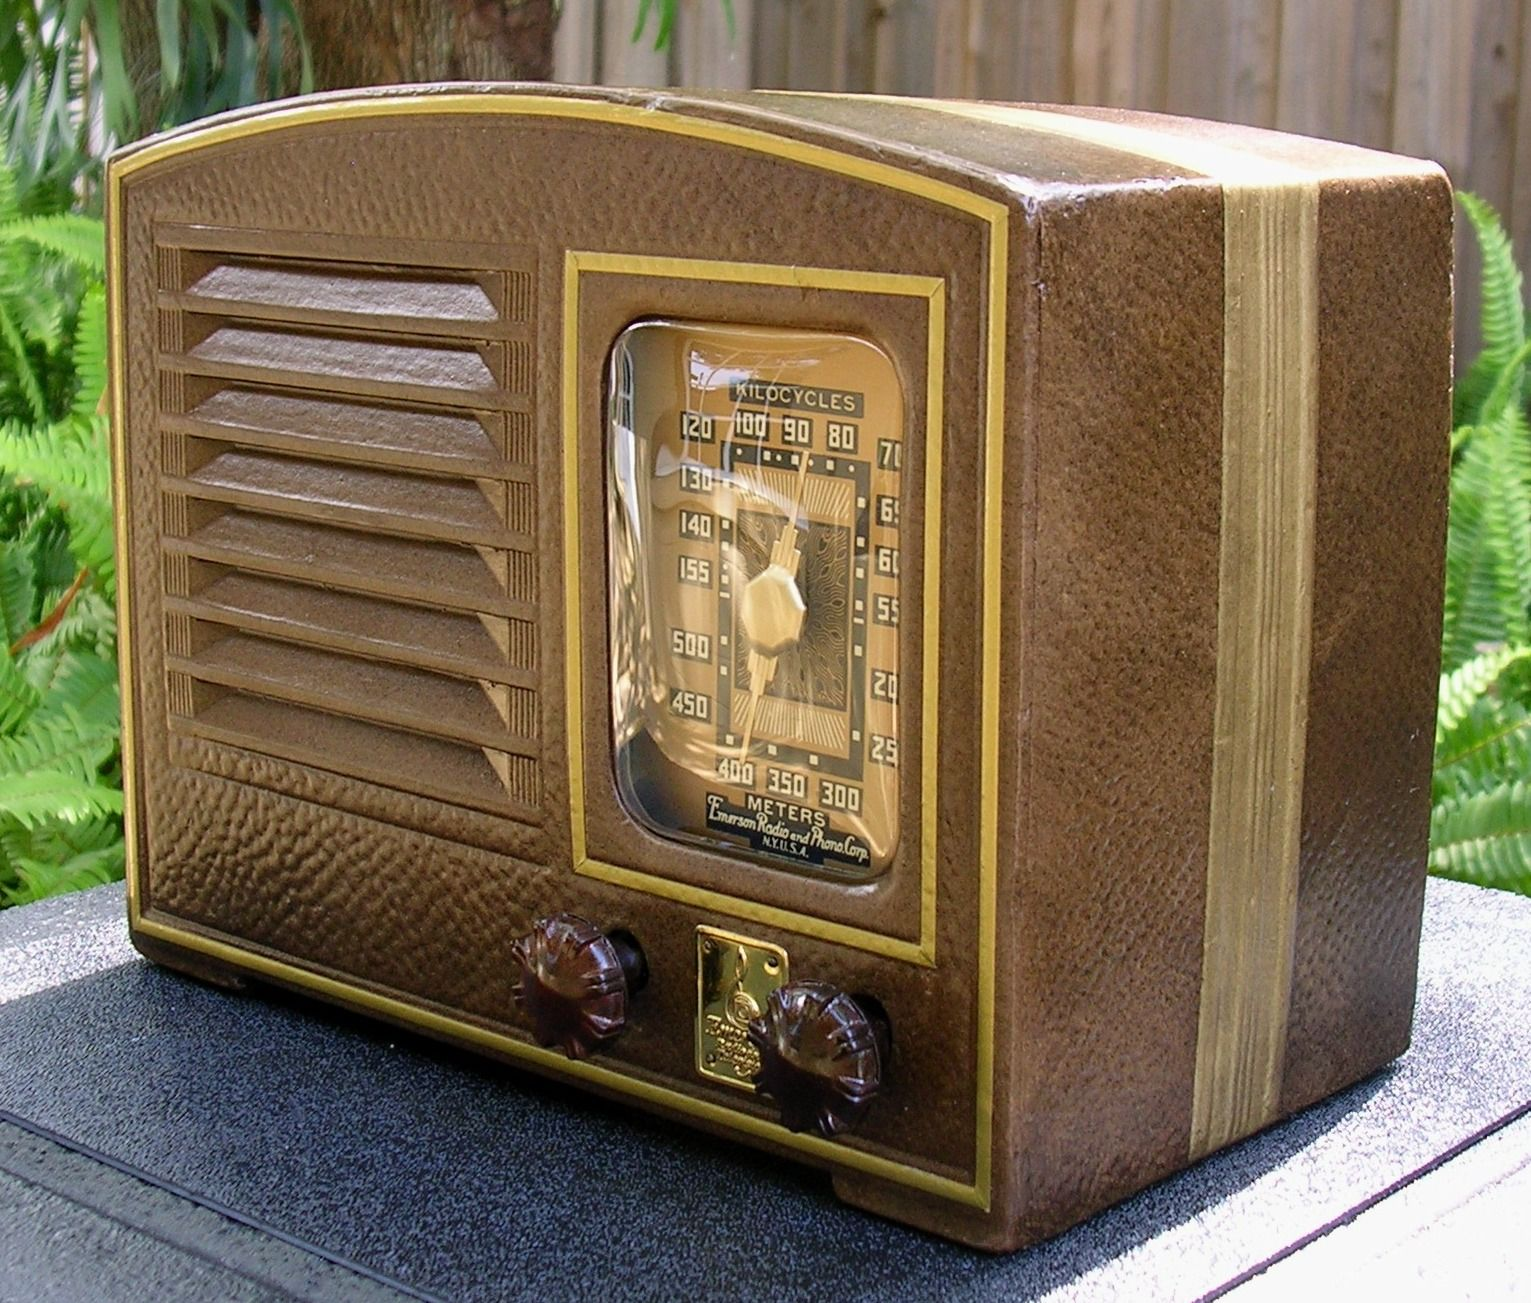 1941 Emerson Db327 Cardboard Am Radio Antique Radio Old Radios